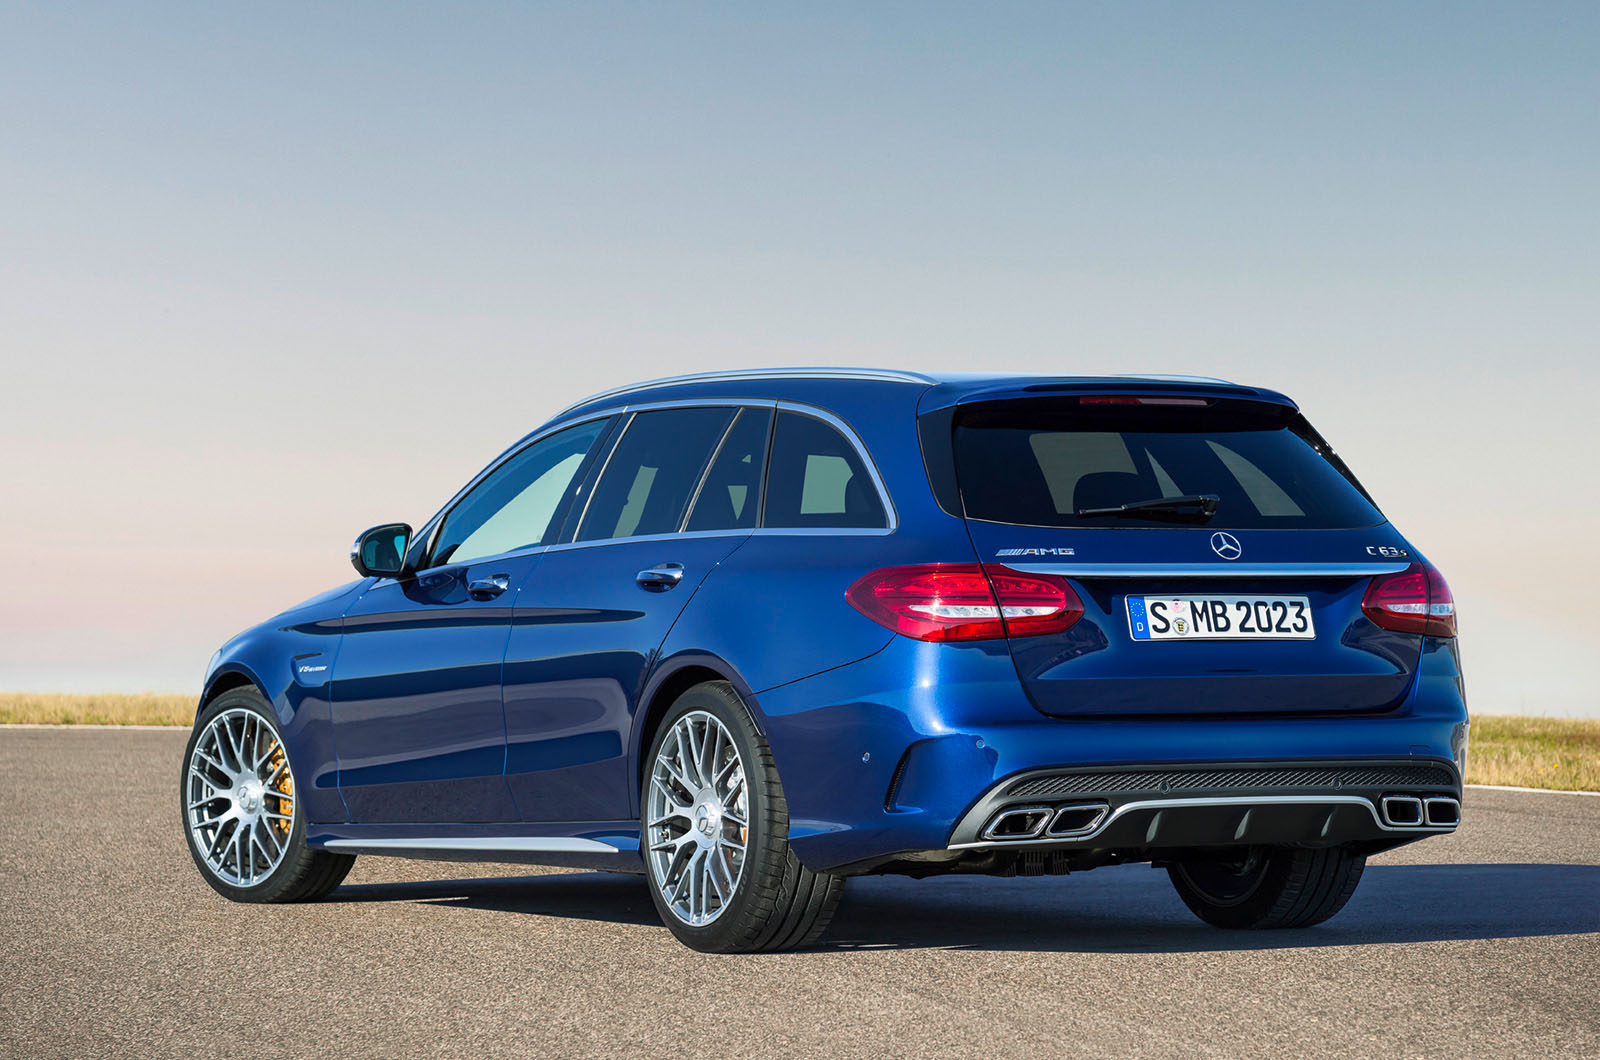 Mercedes Benz C63 Amg Black Series By additionally Index likewise 5503927203 in addition Mercedes Amg C43 Sedan Estate Pricing Announced For Uk also 12. on mercedes c63 amg